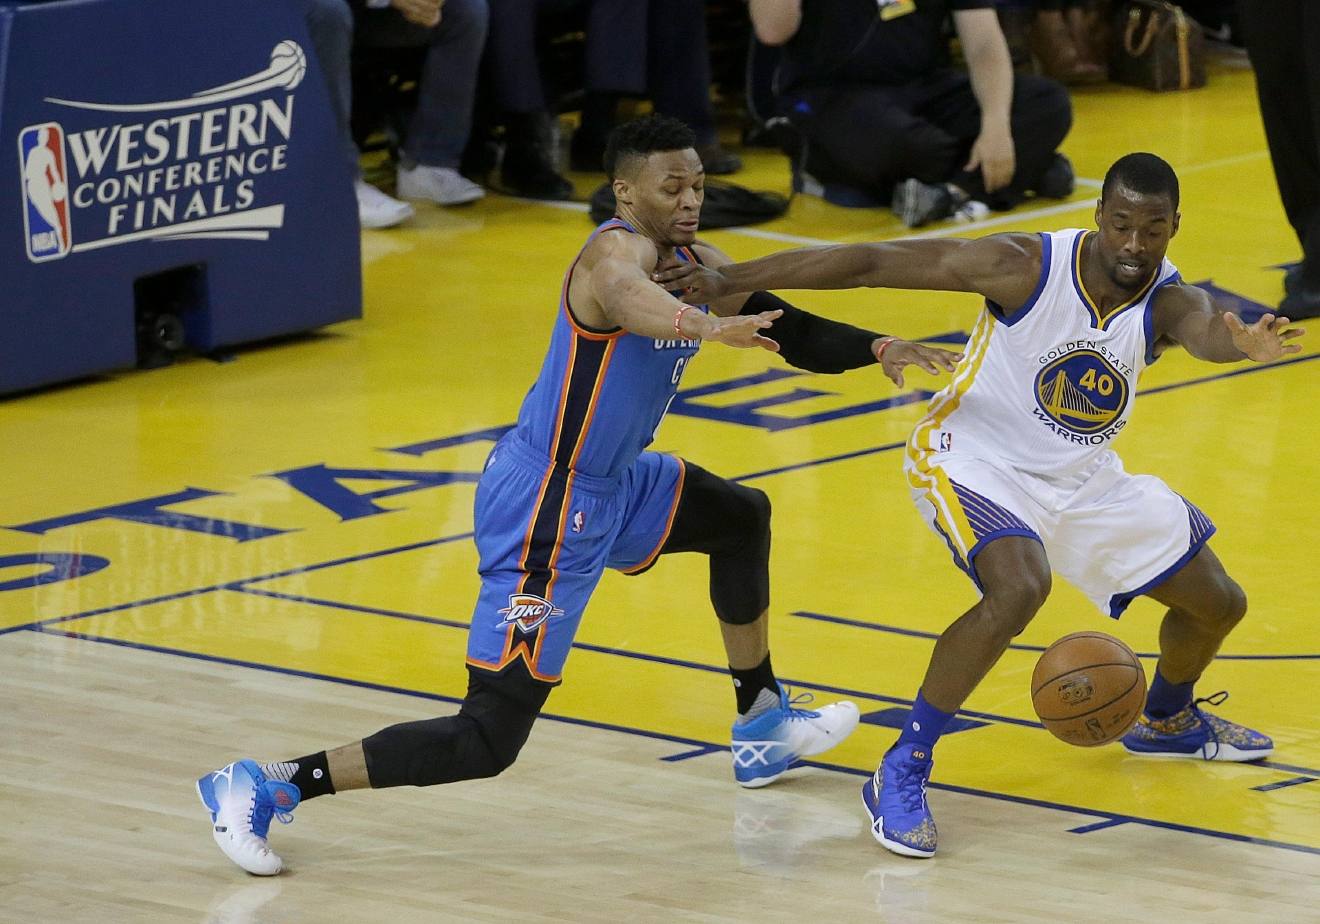 Oklahoma City Thunder guard Russell Westbrook, left, and Golden State Warriors forward Harrison Barnes (40) reach for a loose ball during the first half of Game 5 of the NBA basketball Western Conference finals in Oakland, Calif., Thursday, May 26, 2016. (AP Photo/Jeff Chiu)